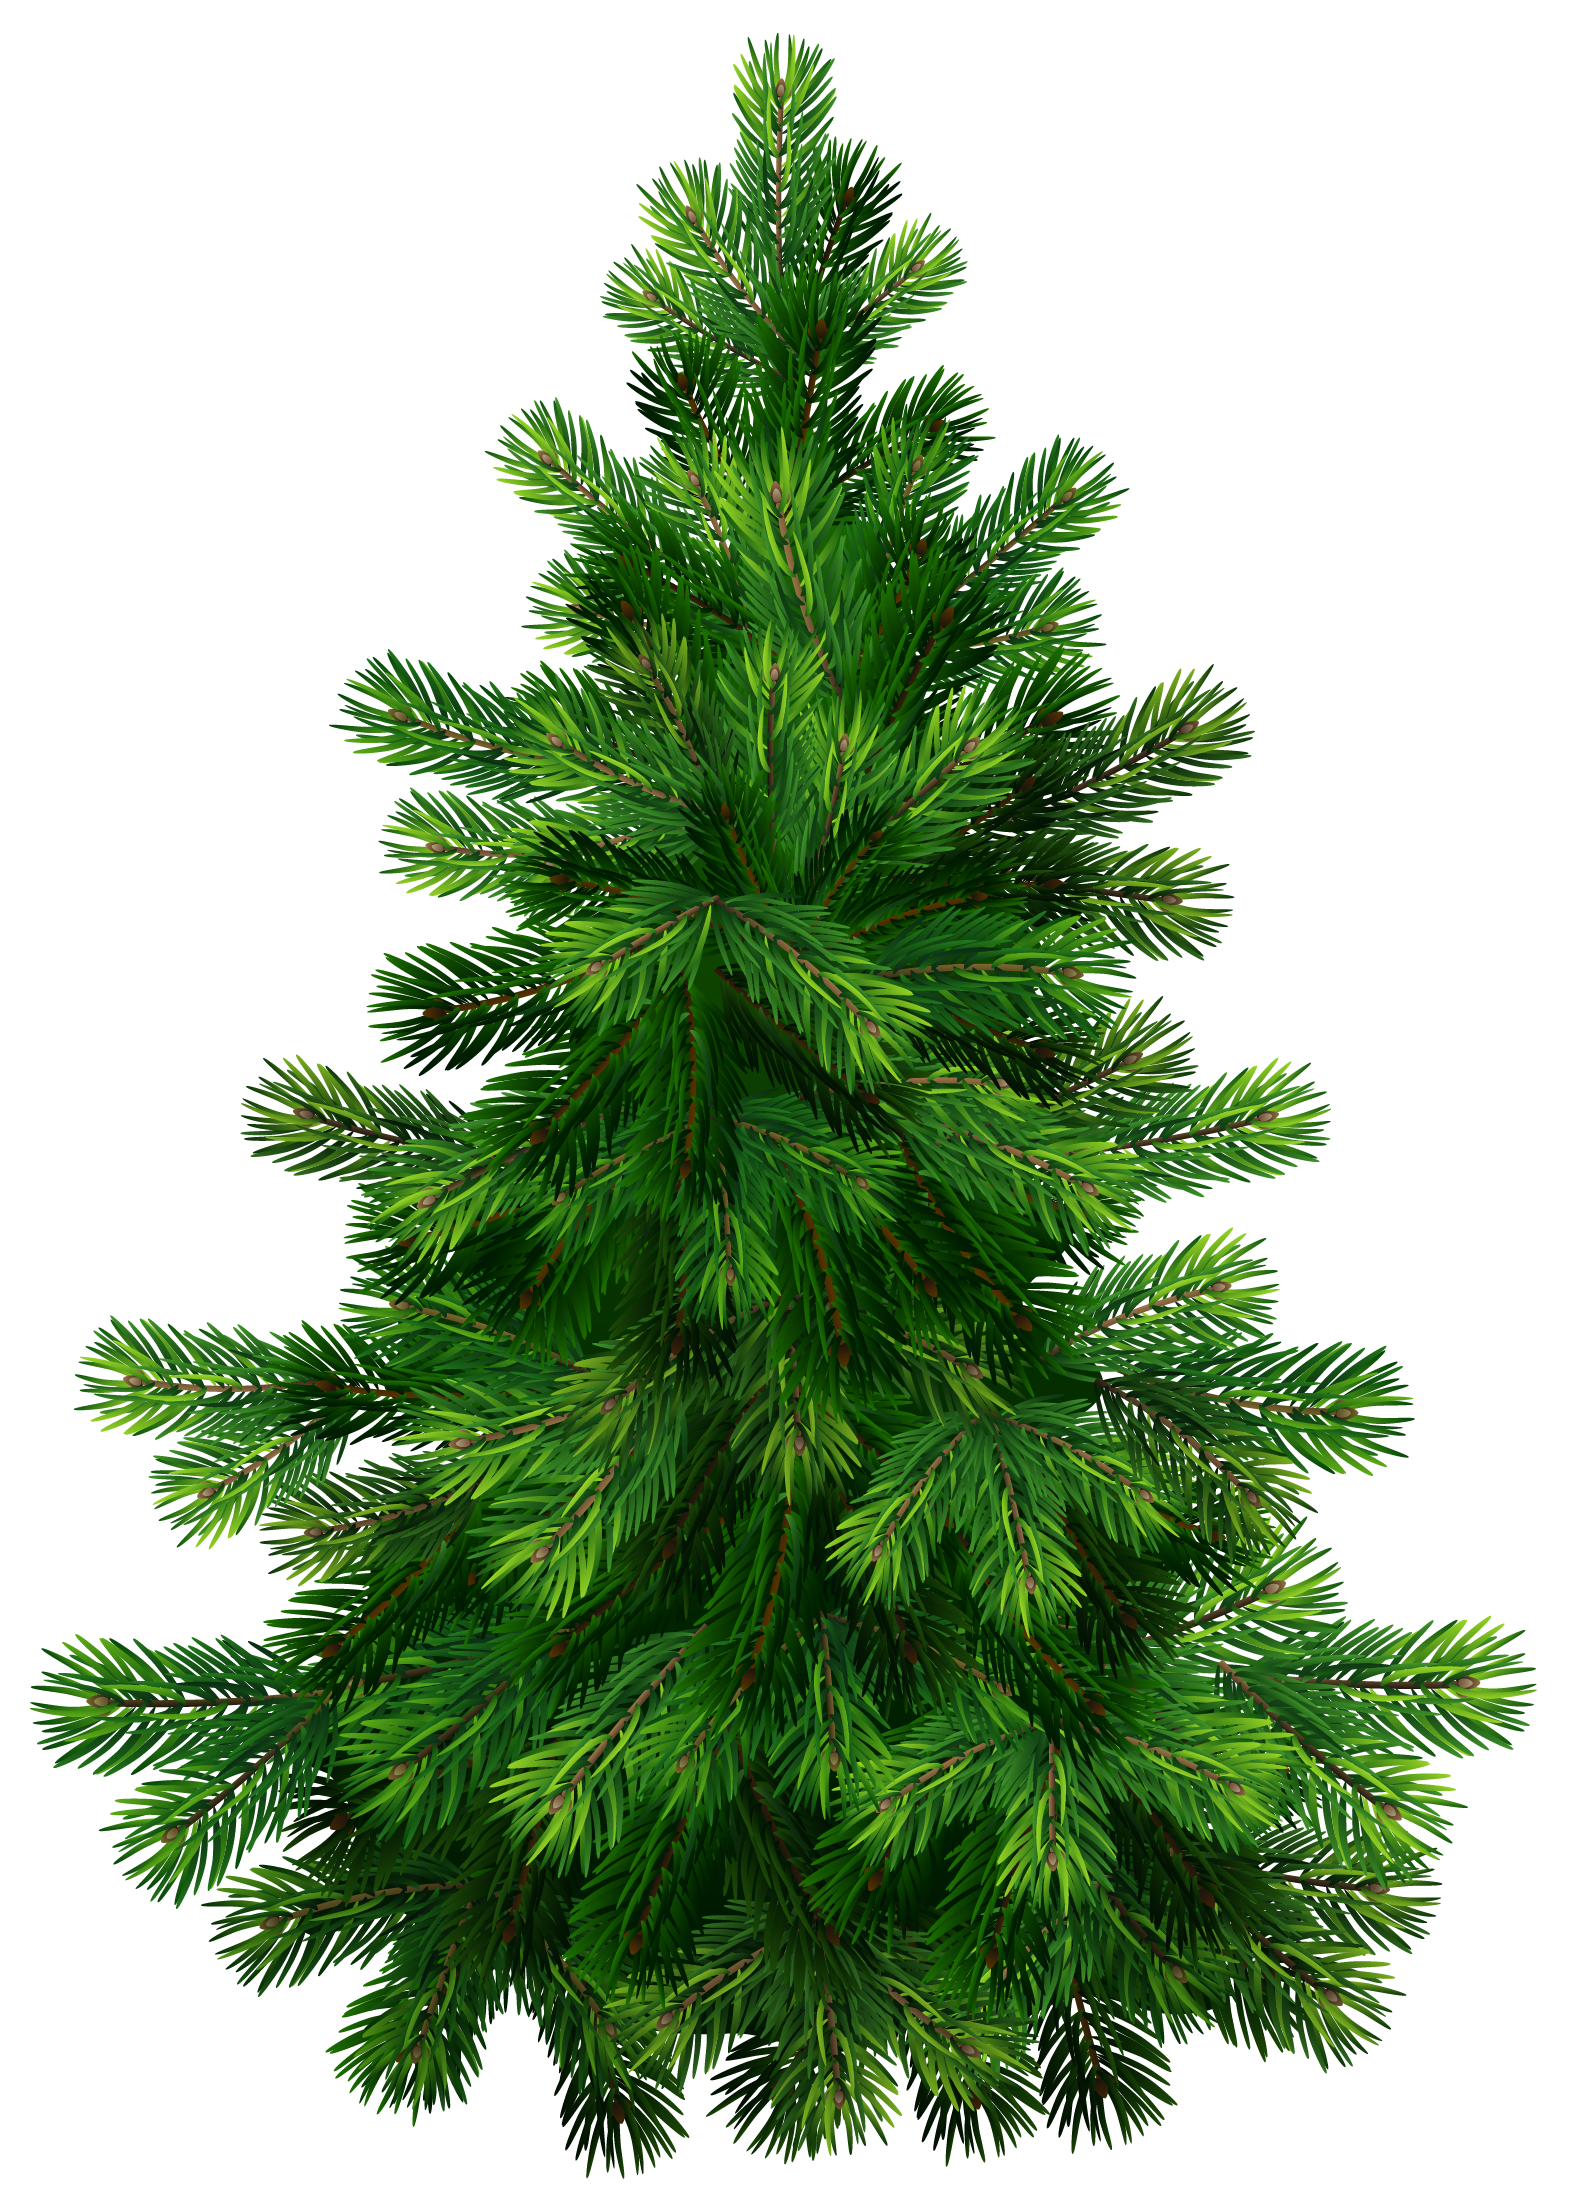 Transparent tree clipart picture. Pine trees png png black and white download